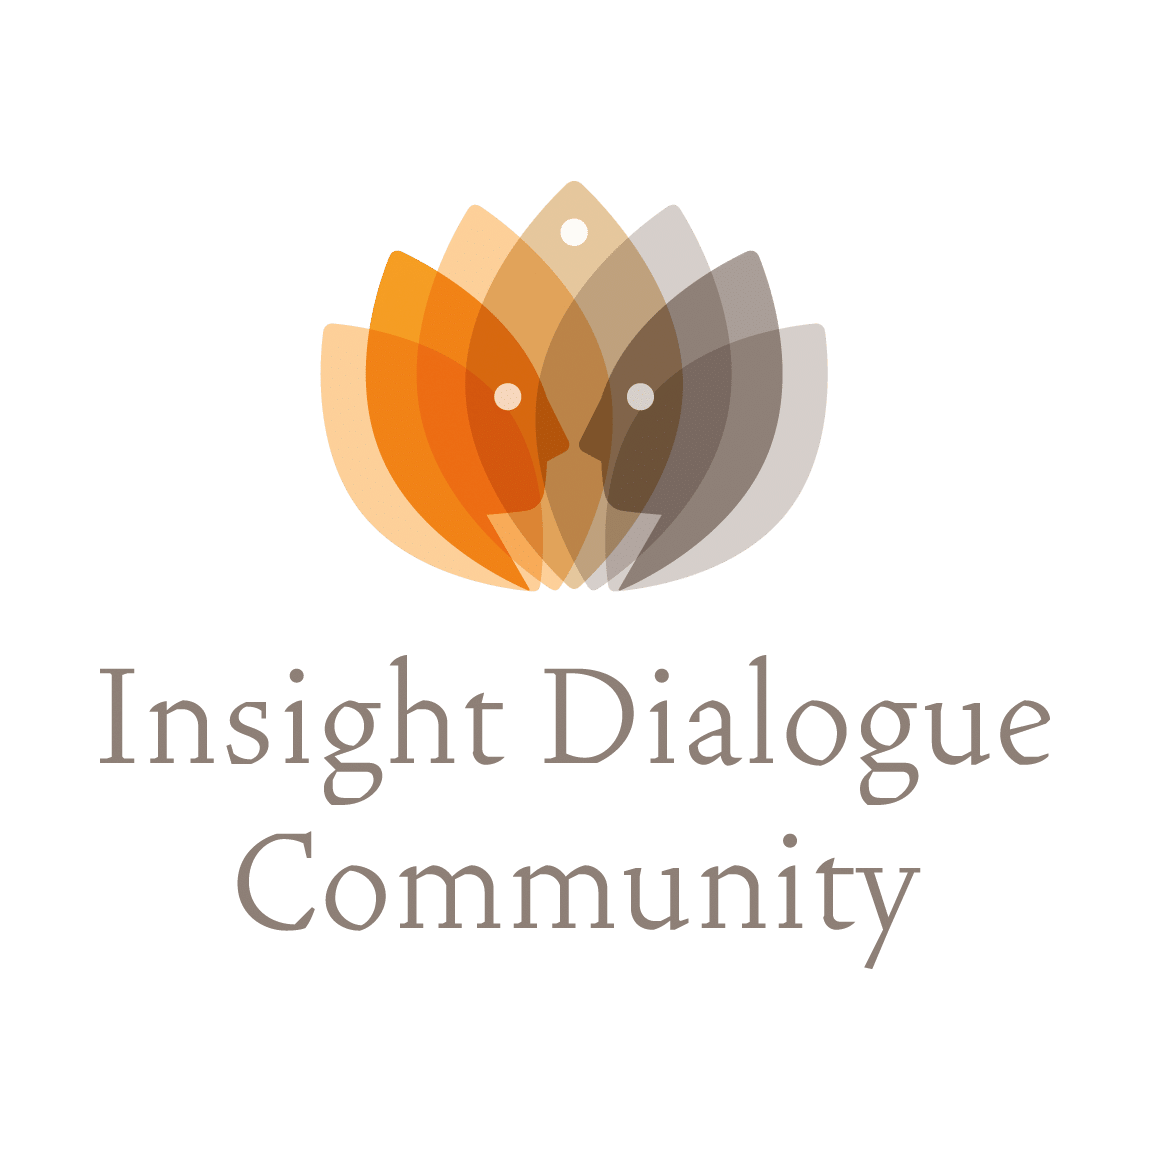 Insight Dialogue Community